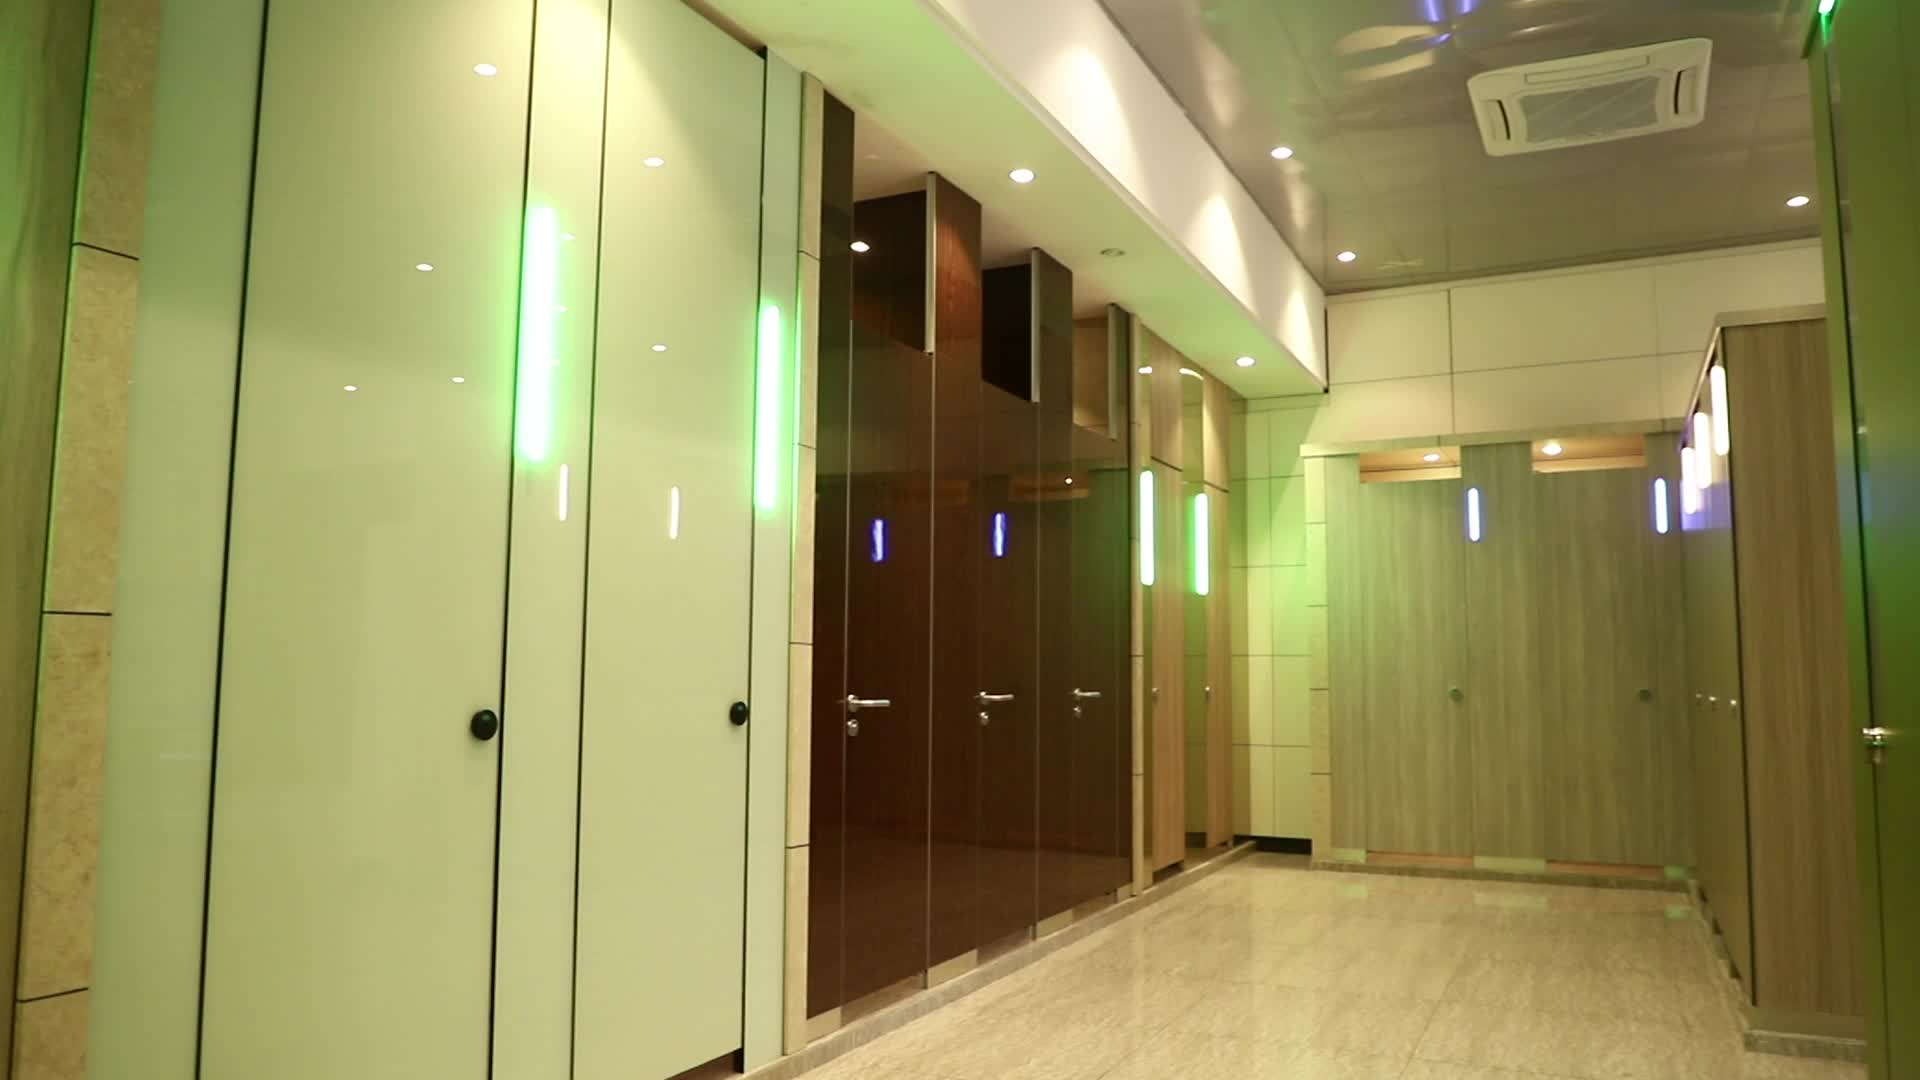 AOGAO Fitting Room Partition SS 304 Accessories Toilet Cubicle Waterproof Compact Board